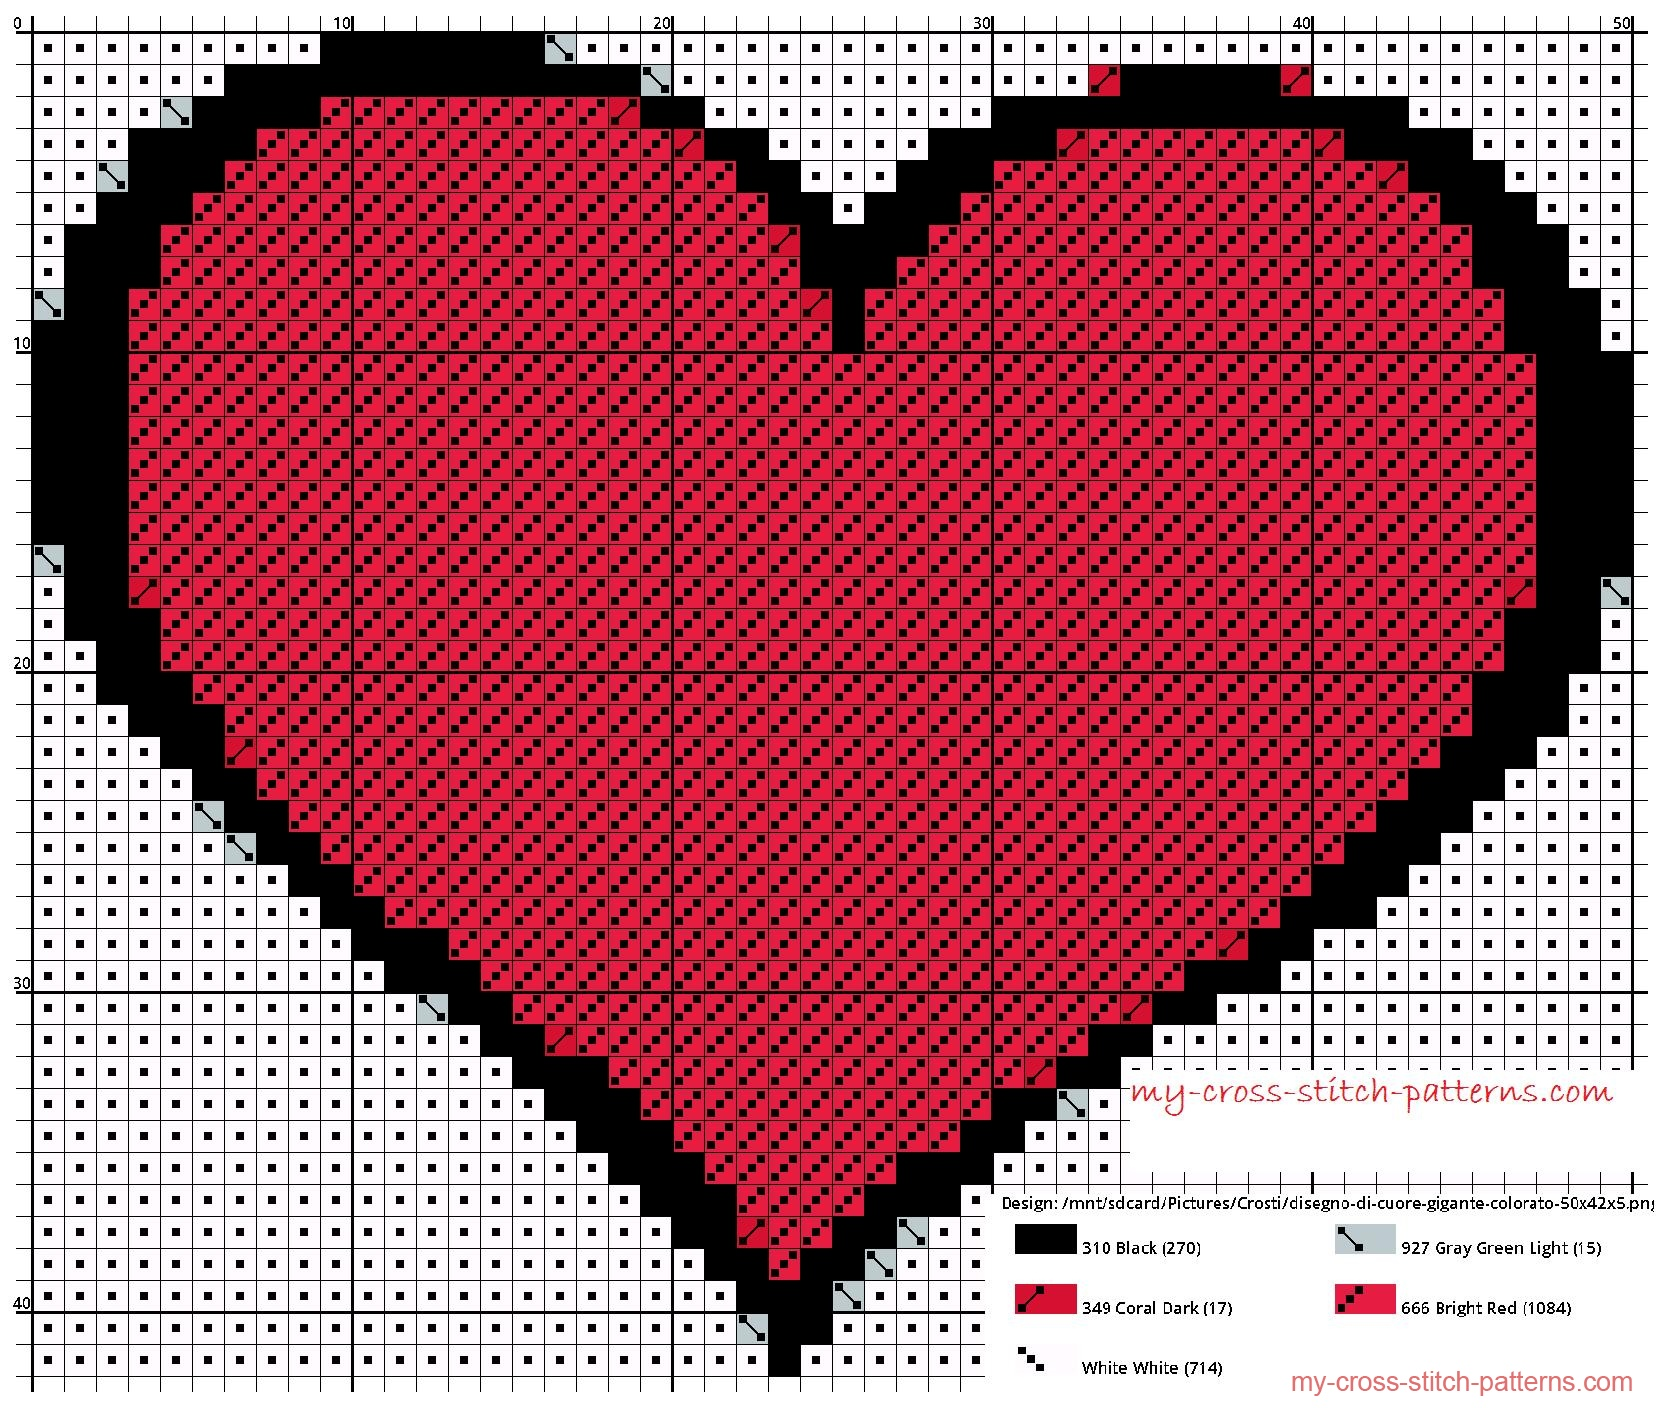 a_simple_hearth_cross_stitch_pattern_free_made_with_software_app_android_crosti